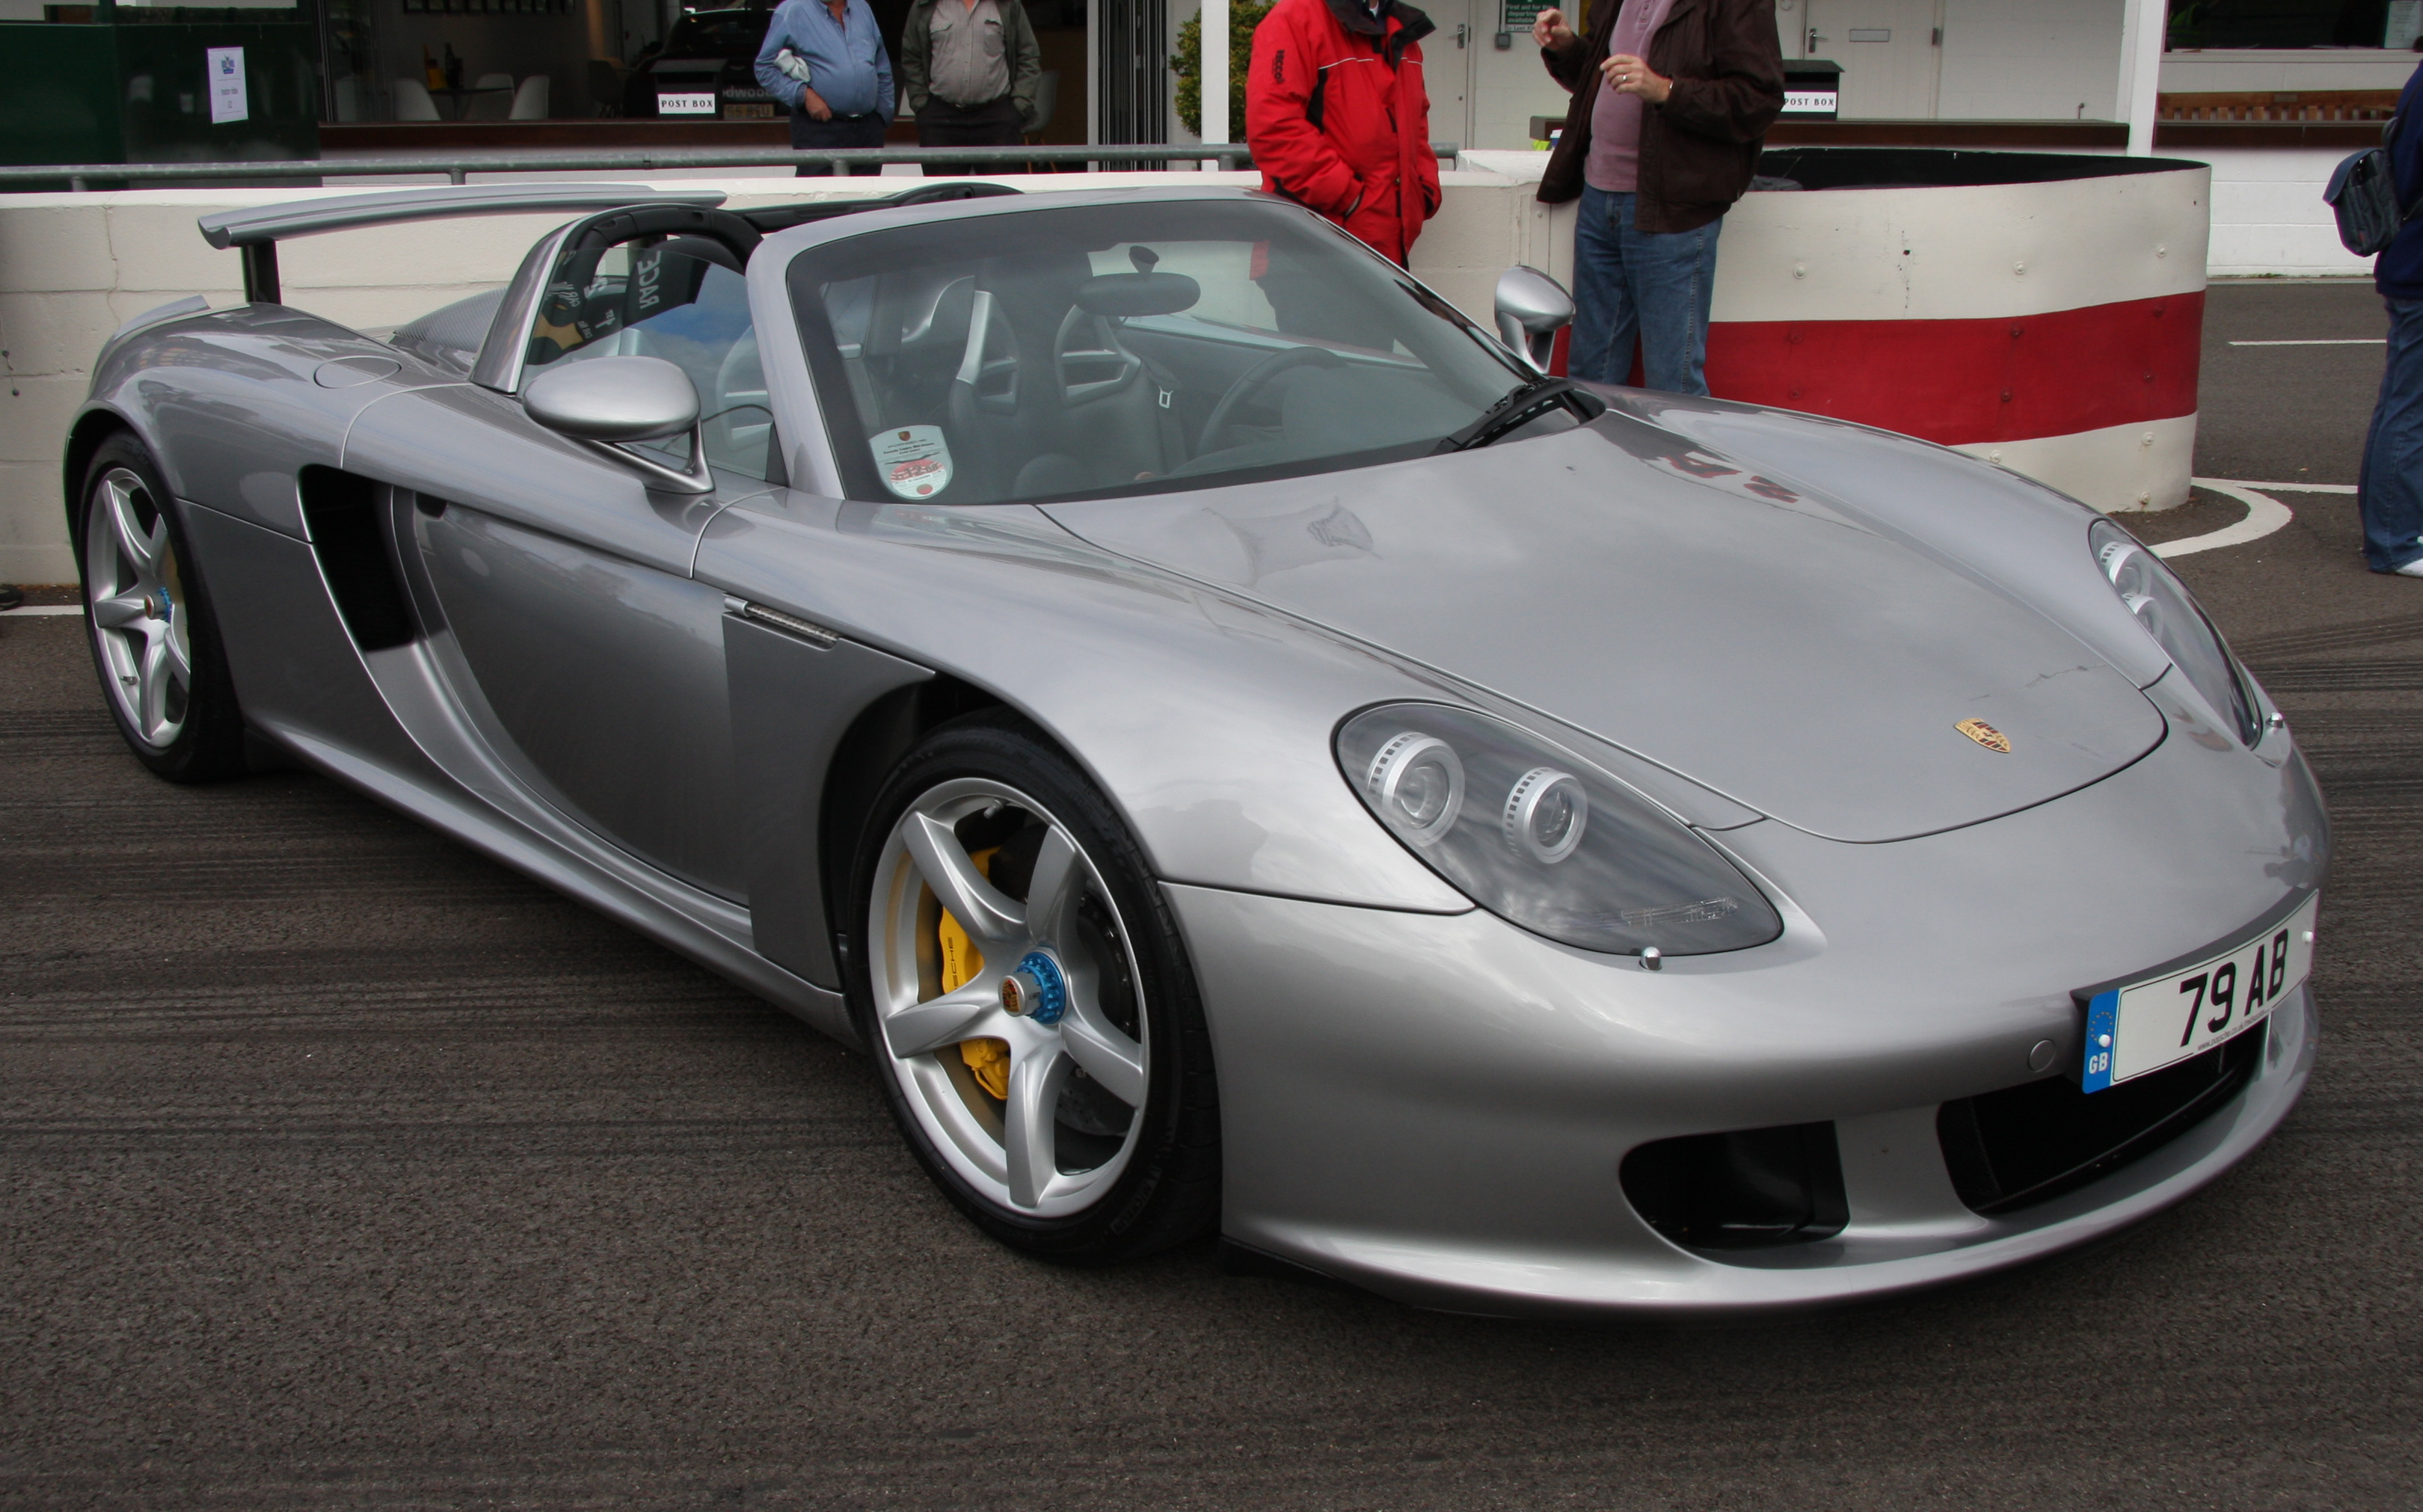 Porsche Carrera gt Price India Porsche Carrera gt